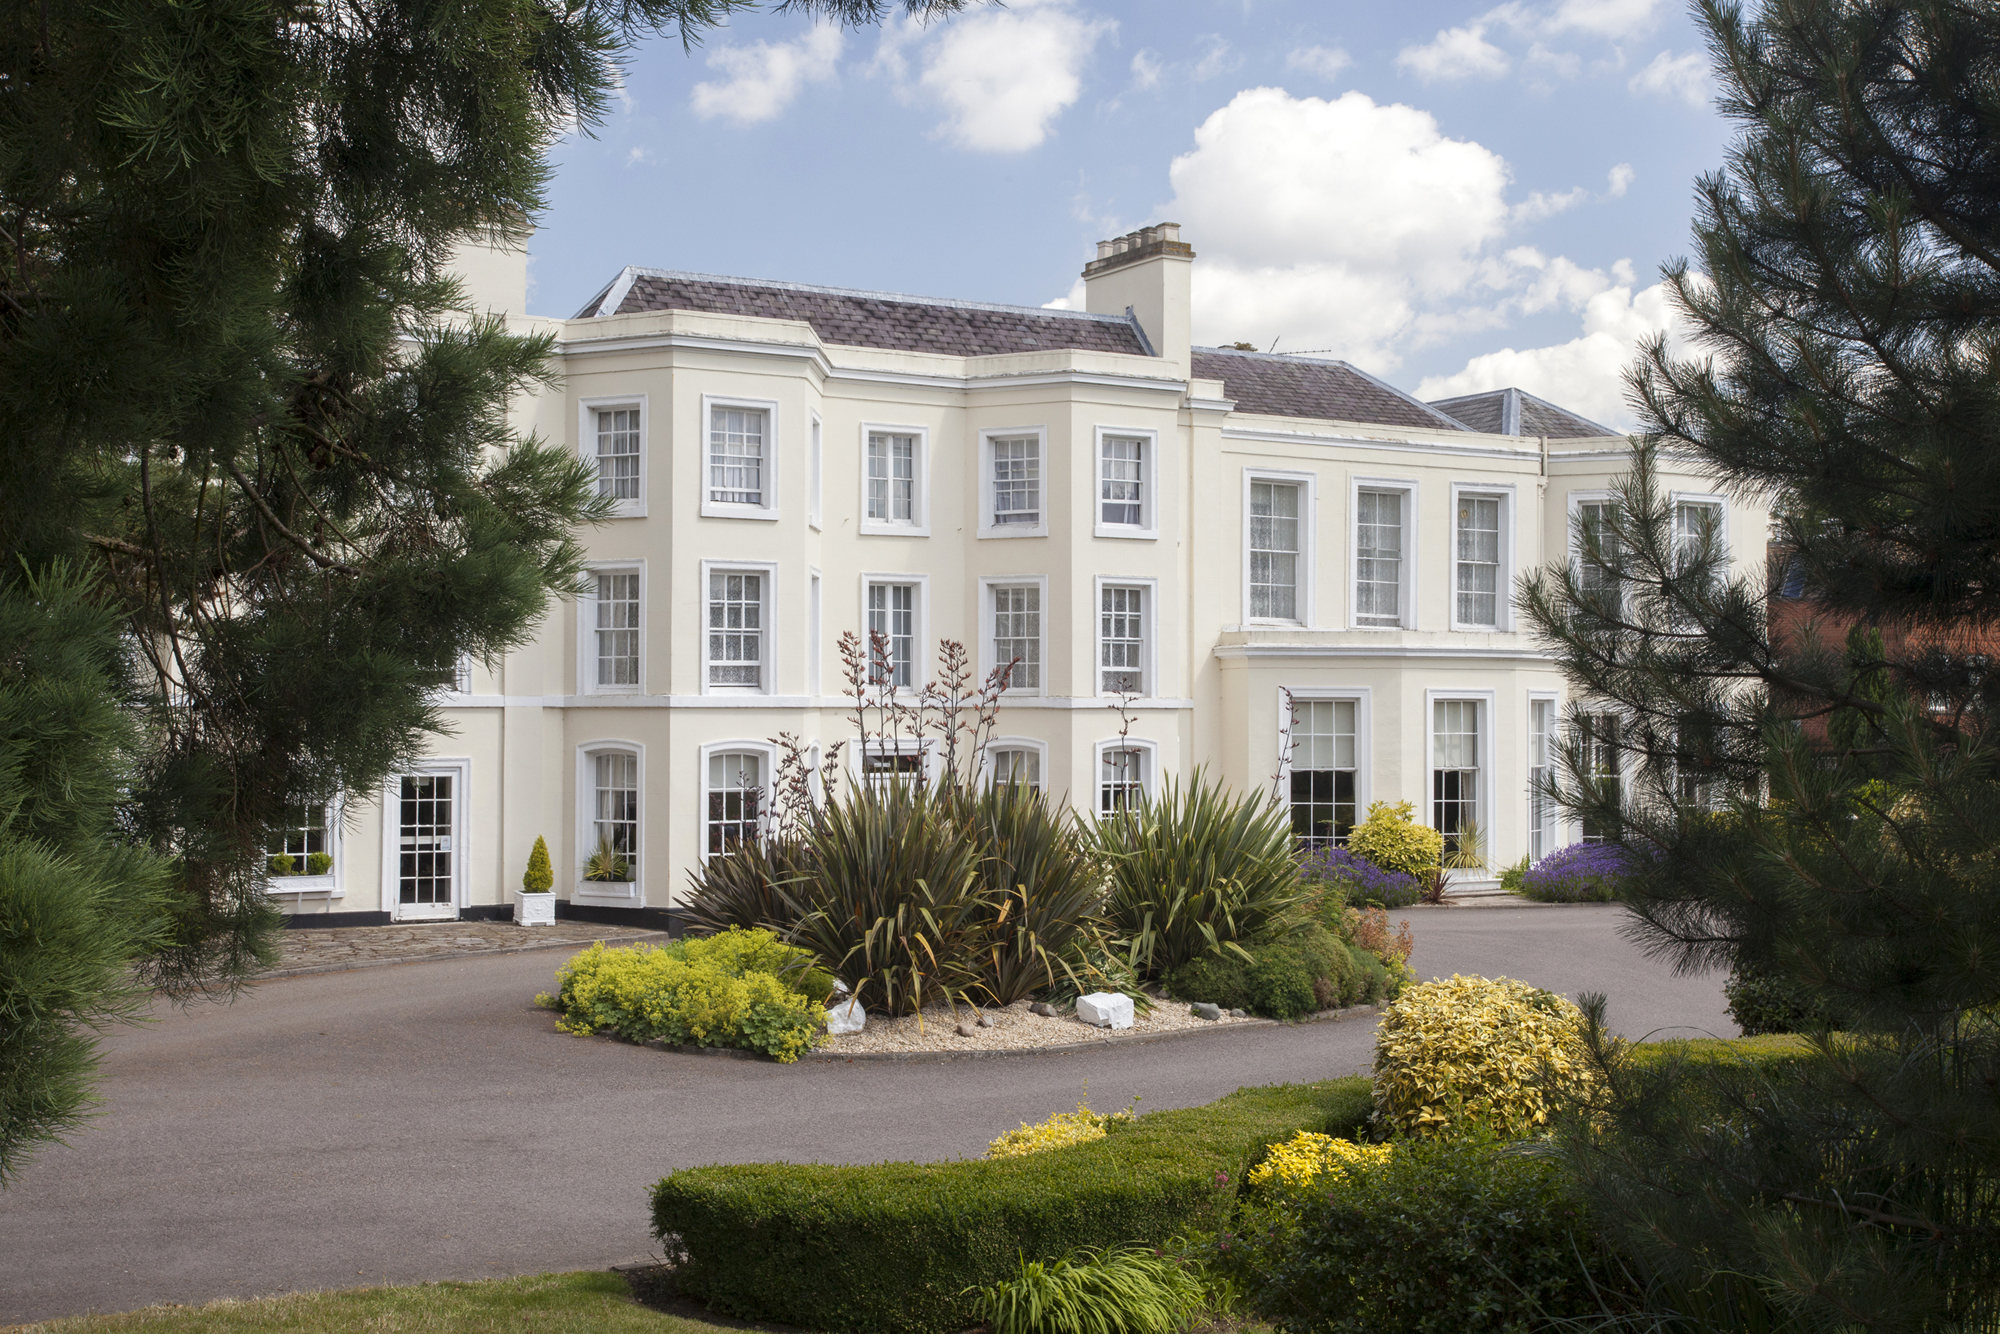 Burnham Beeches venue hire 1 hour from London